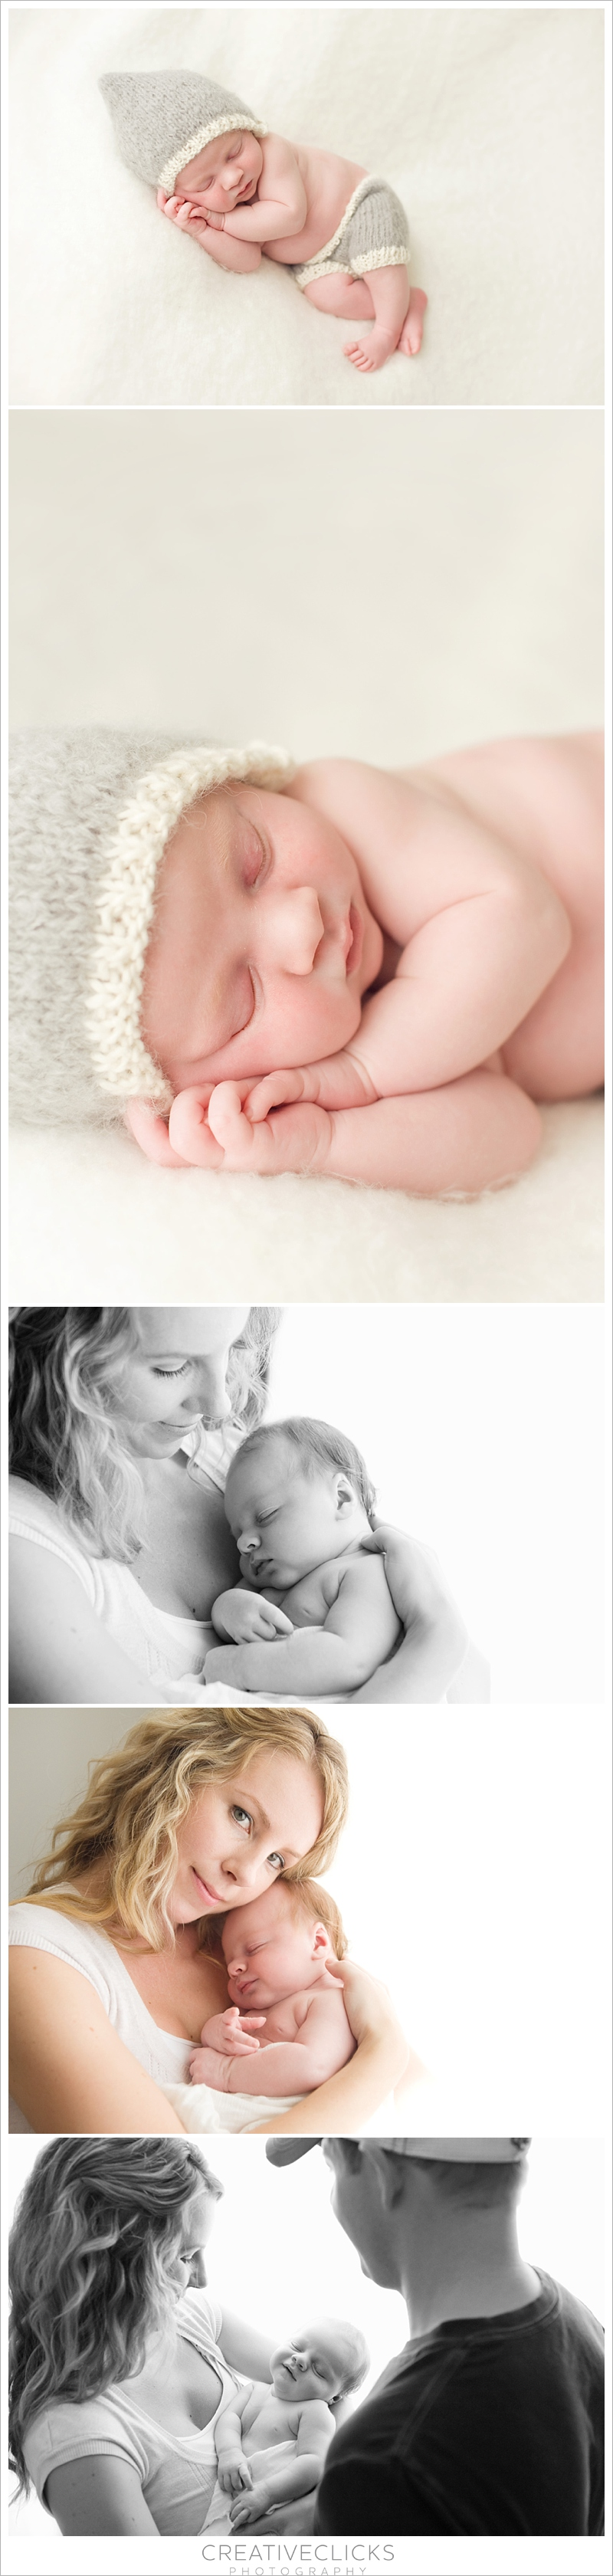 Newborn baby boy in his mothers arms